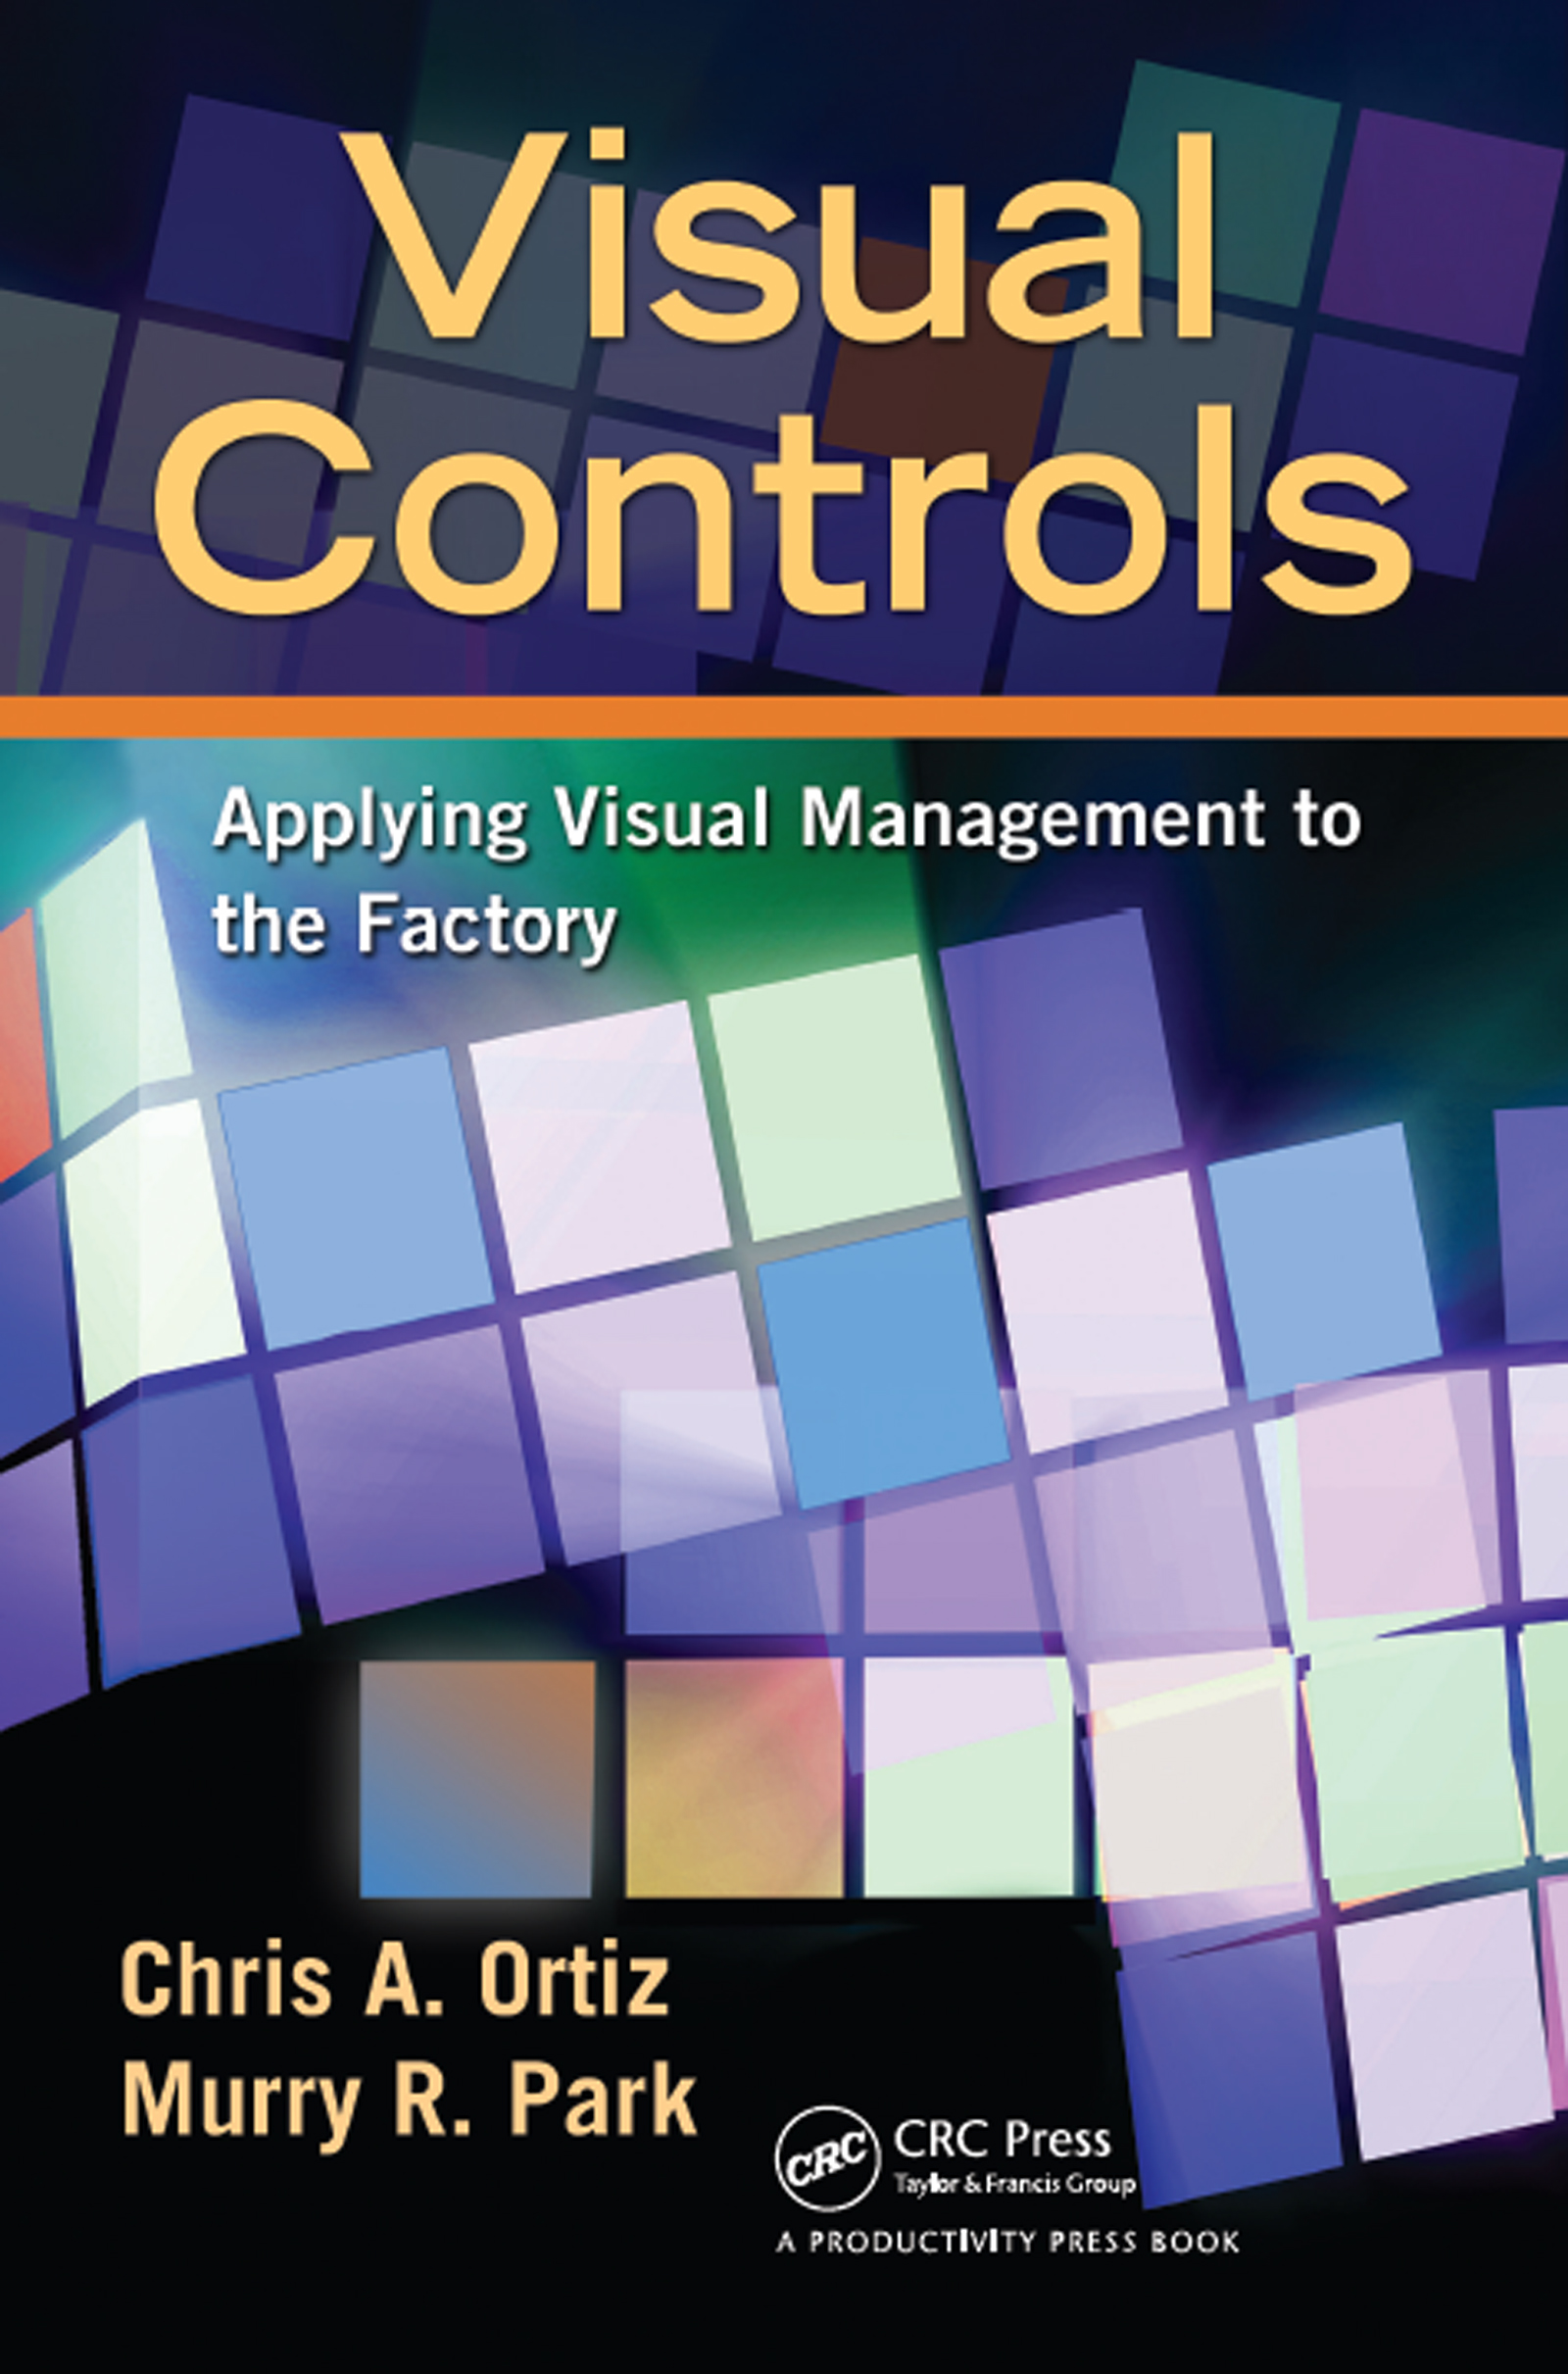 Download Ebook Visual Controls by Chris A. Ortiz Pdf